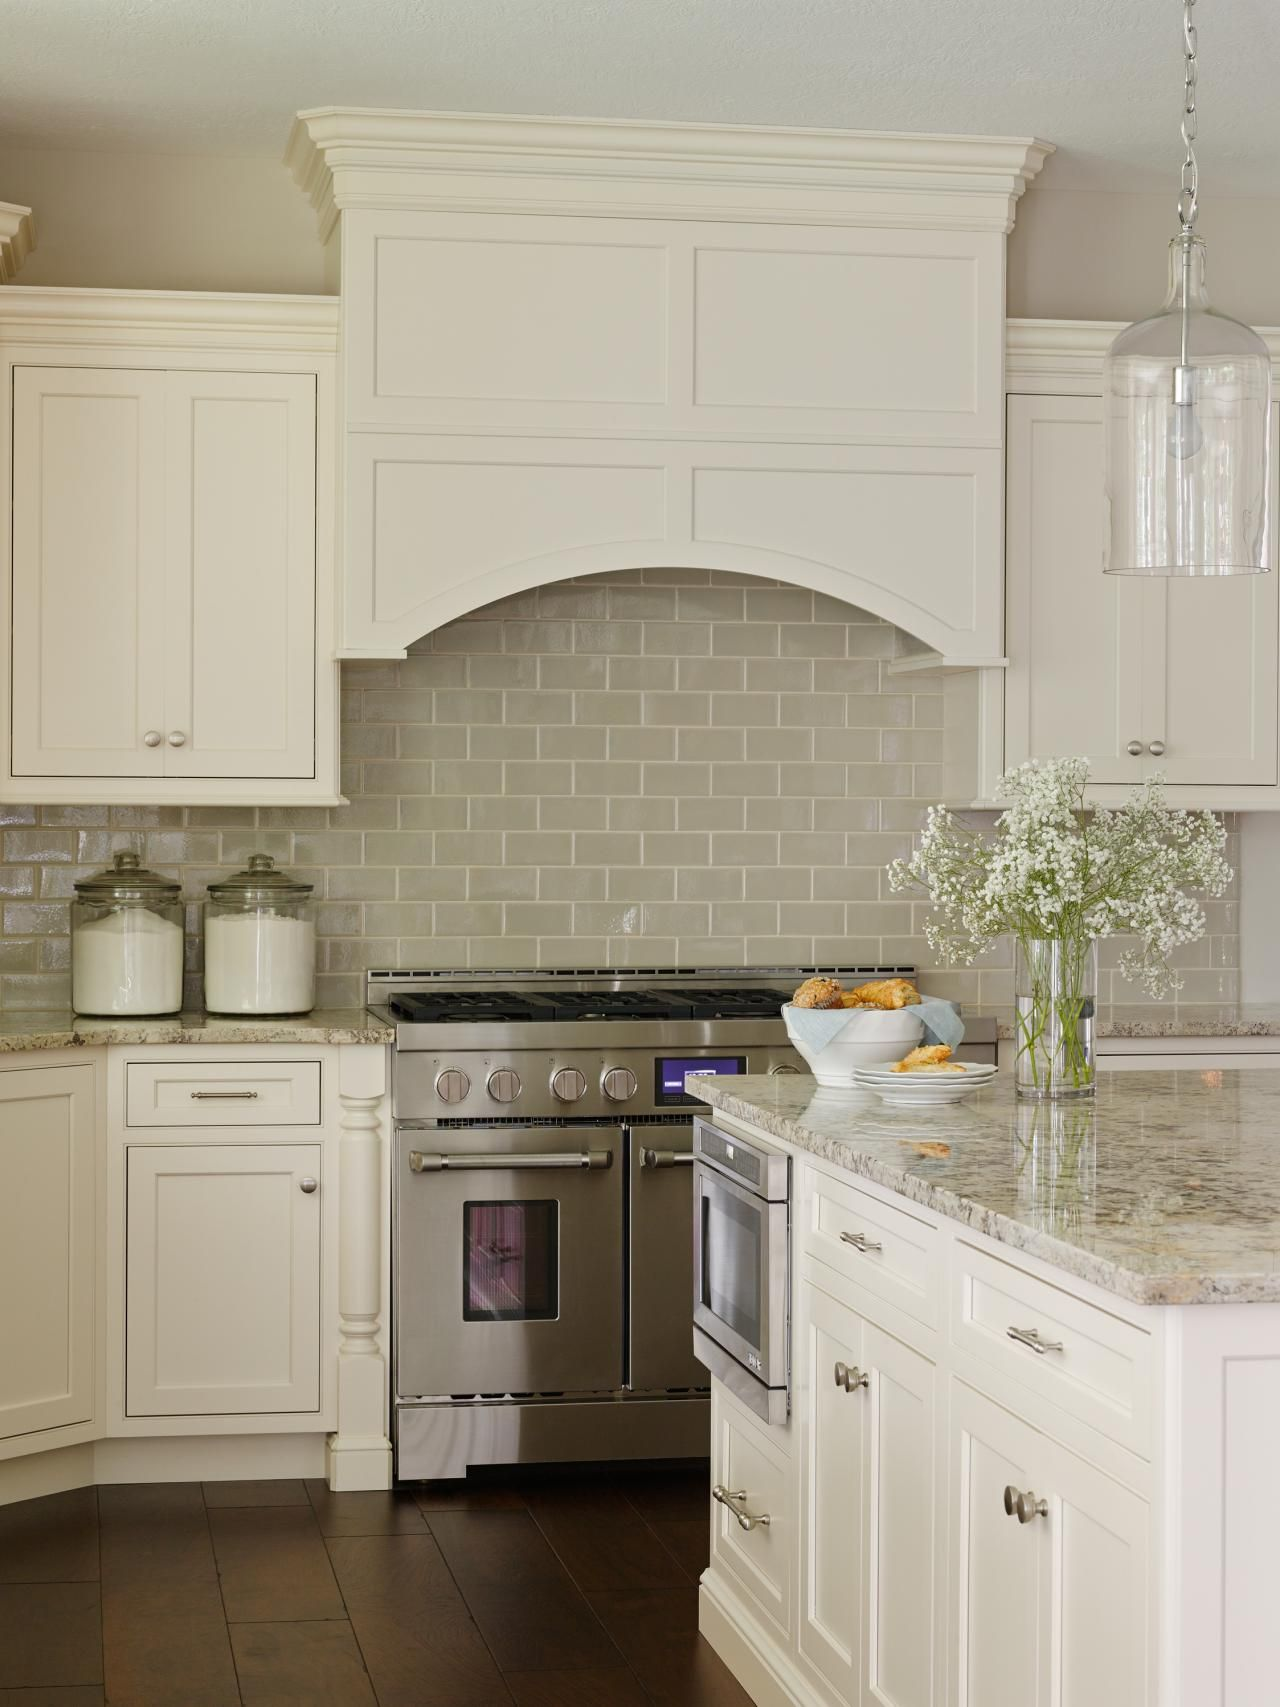 Best Kitchen Kitchen Remodel White Kitchen Backsplash Off